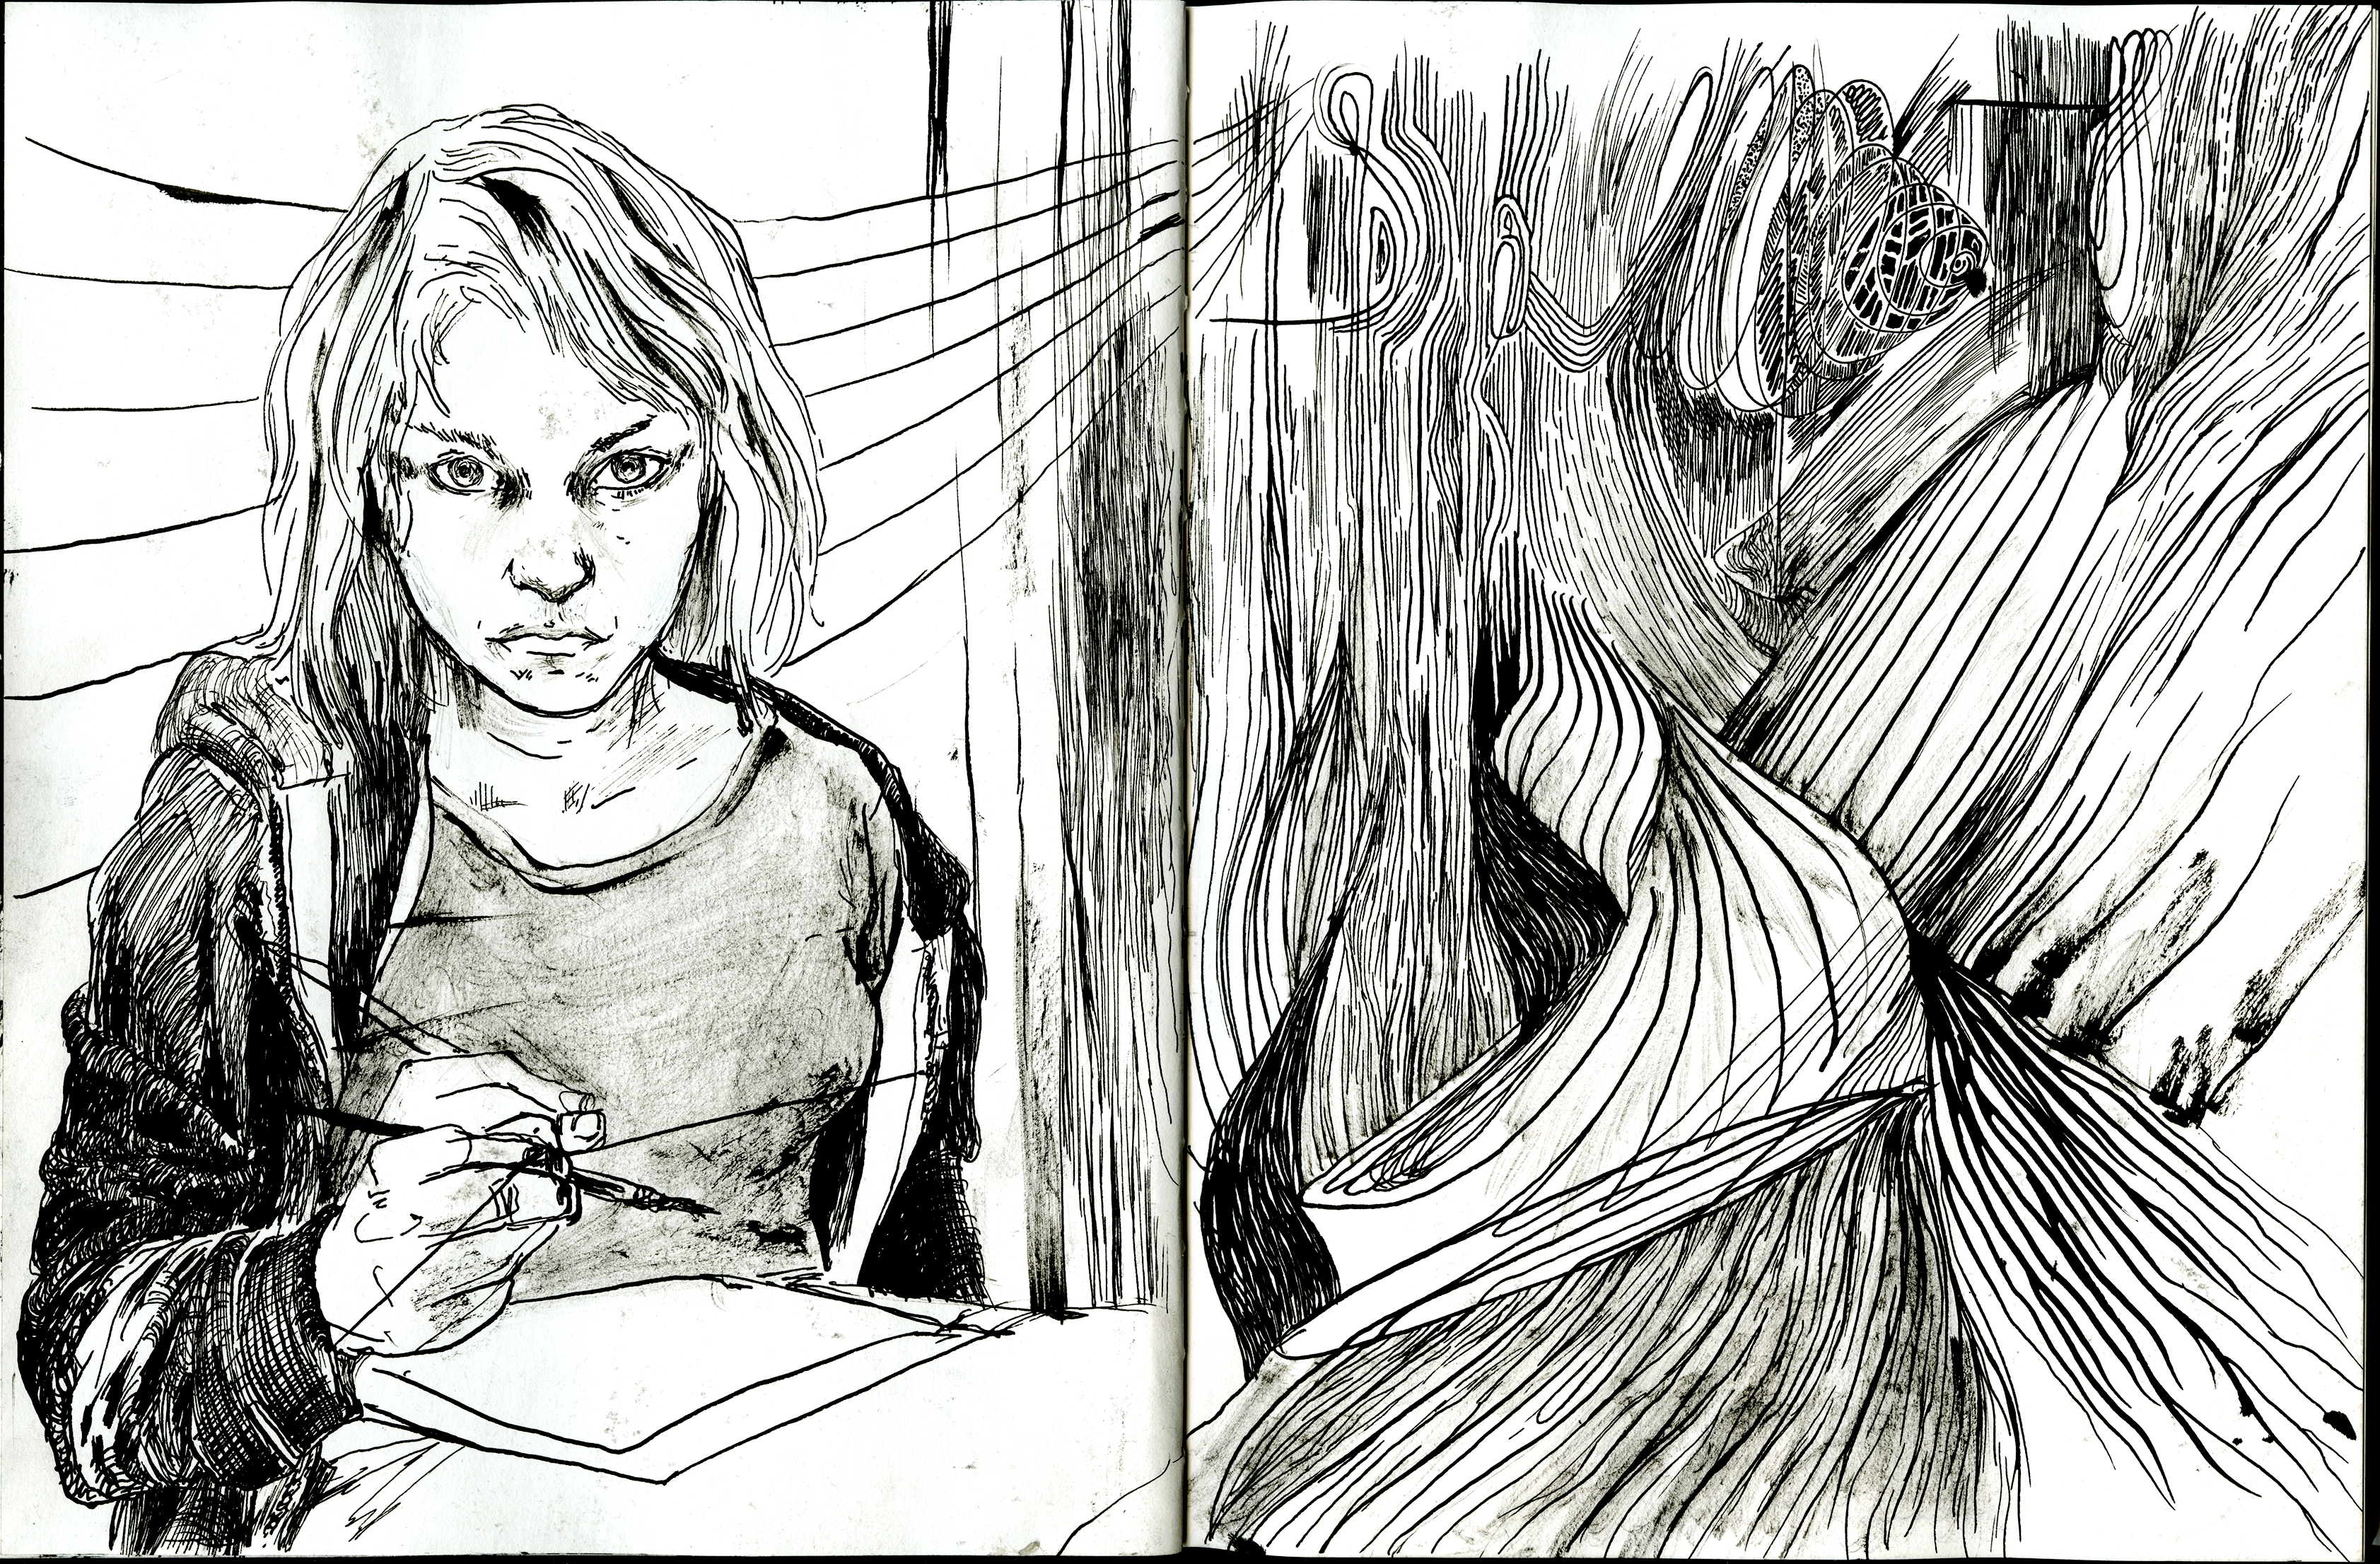 sketchbook_oct15_diego-2